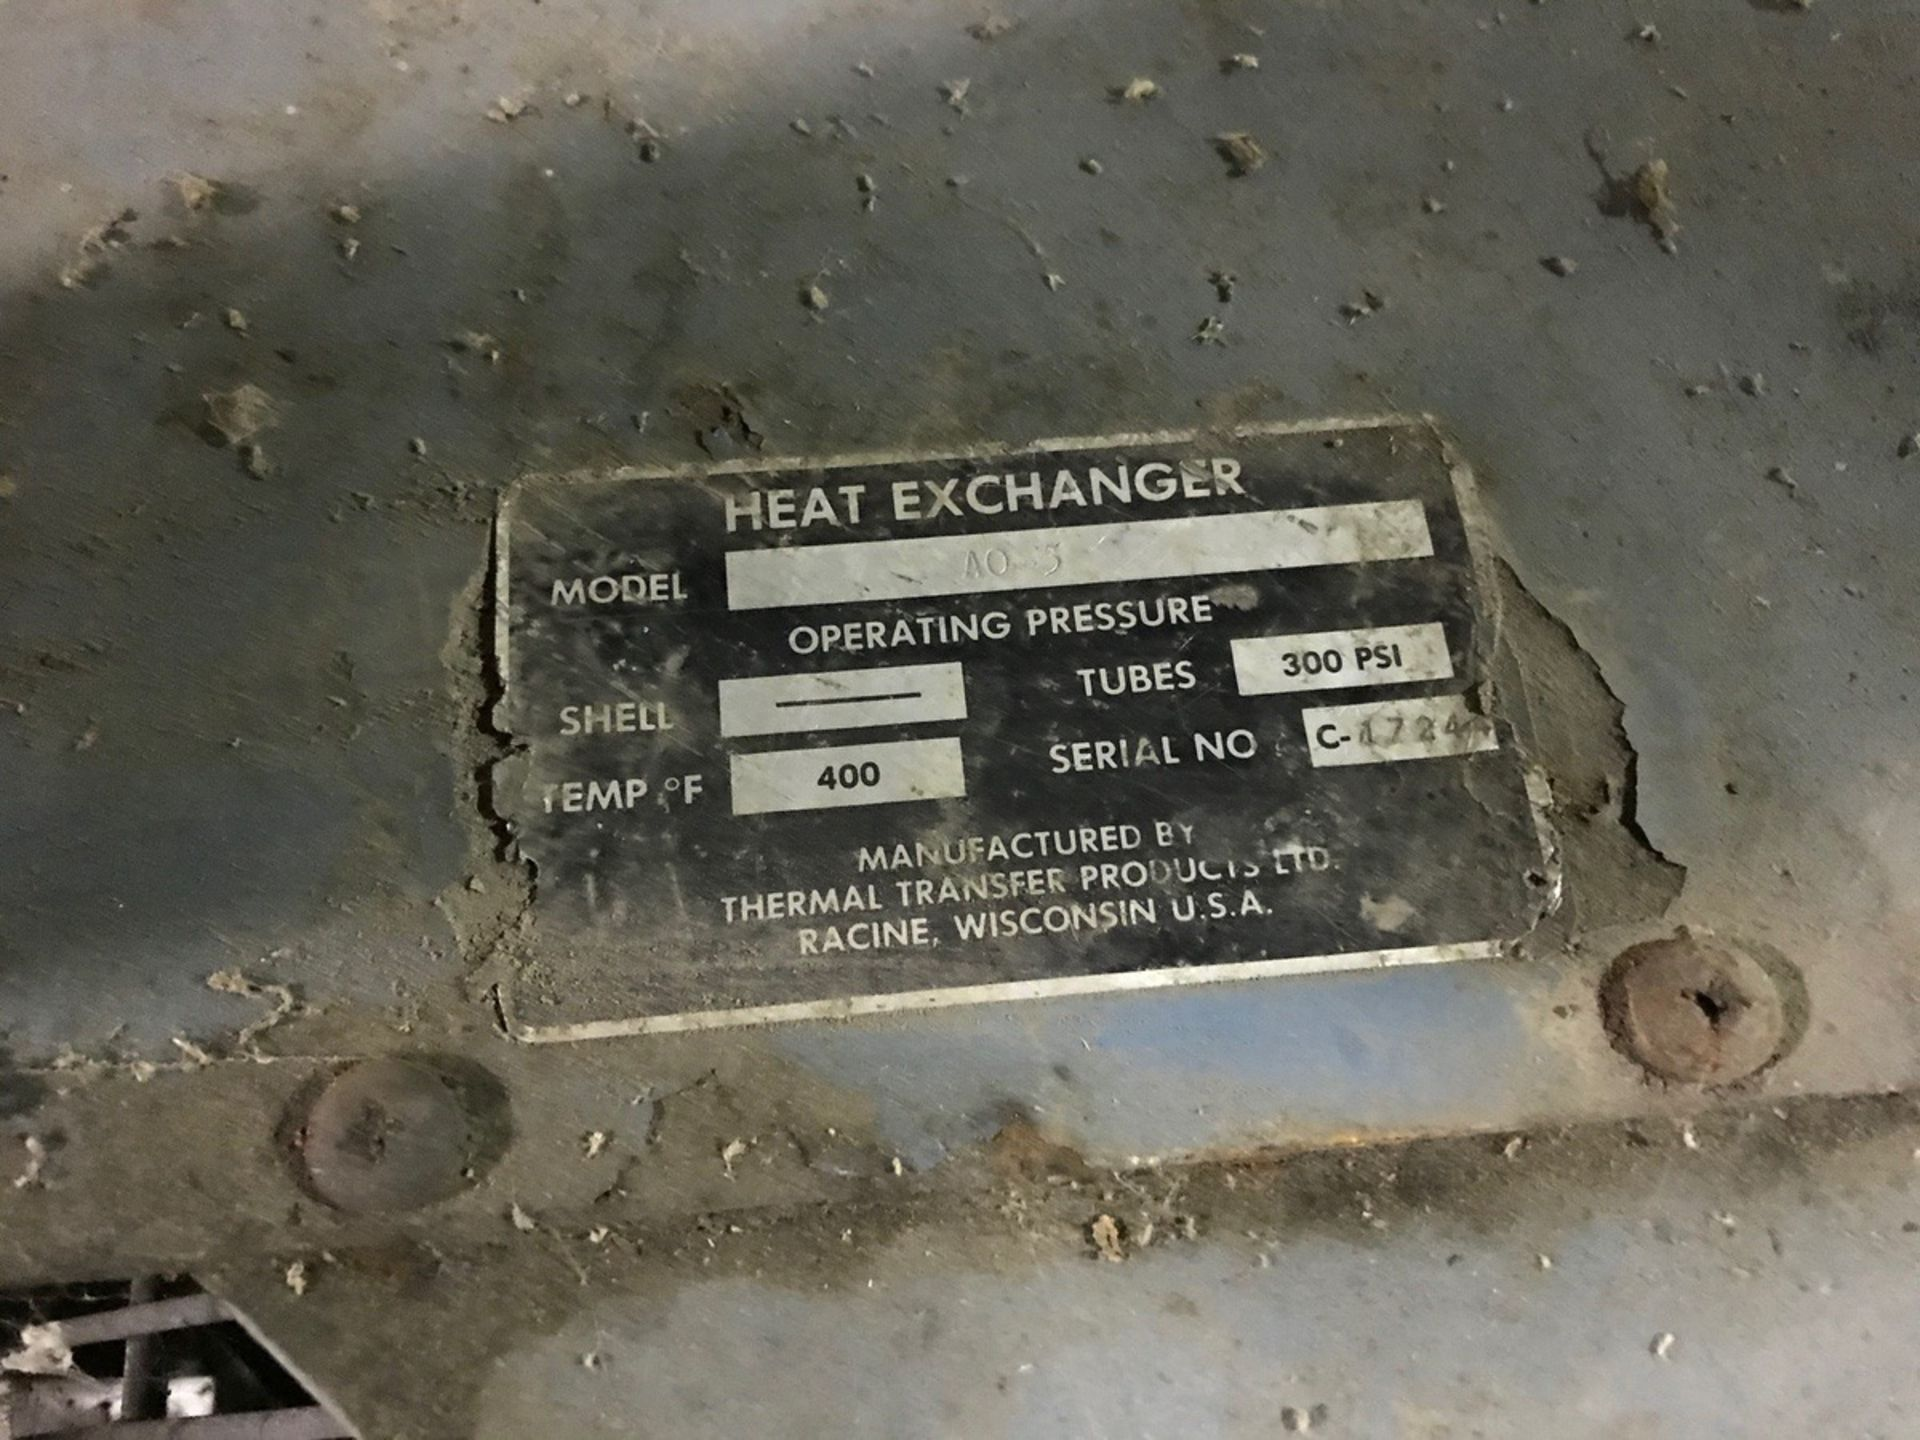 HYDRUALIC POWER PACK WITH HEAT EXCHANGER | Rig Fee: $300 - Image 2 of 2